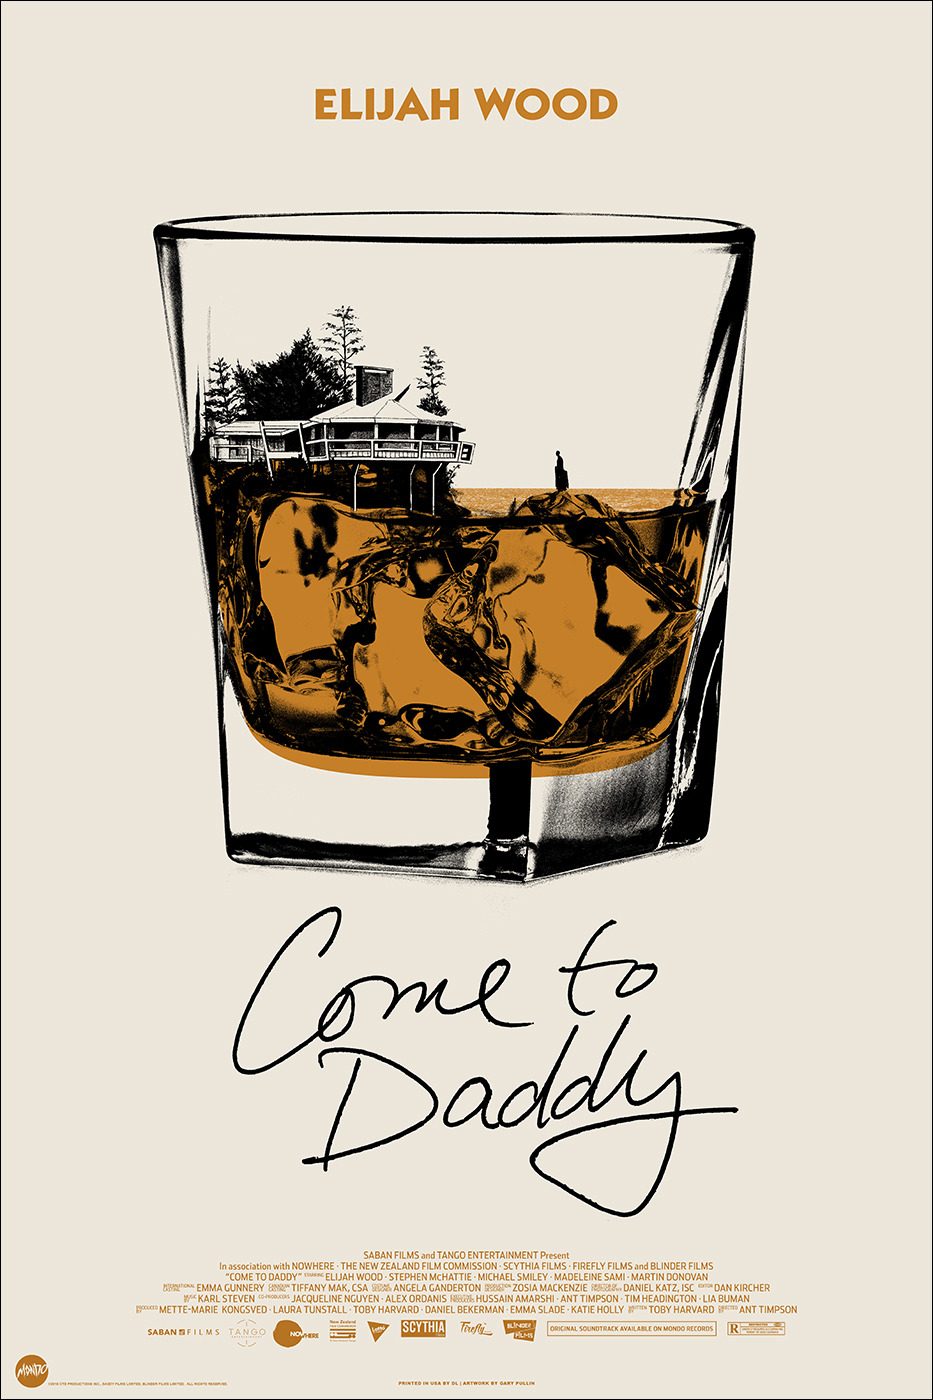 ATEIK PAS TĖTUKĄ (2019) / Come to Daddy